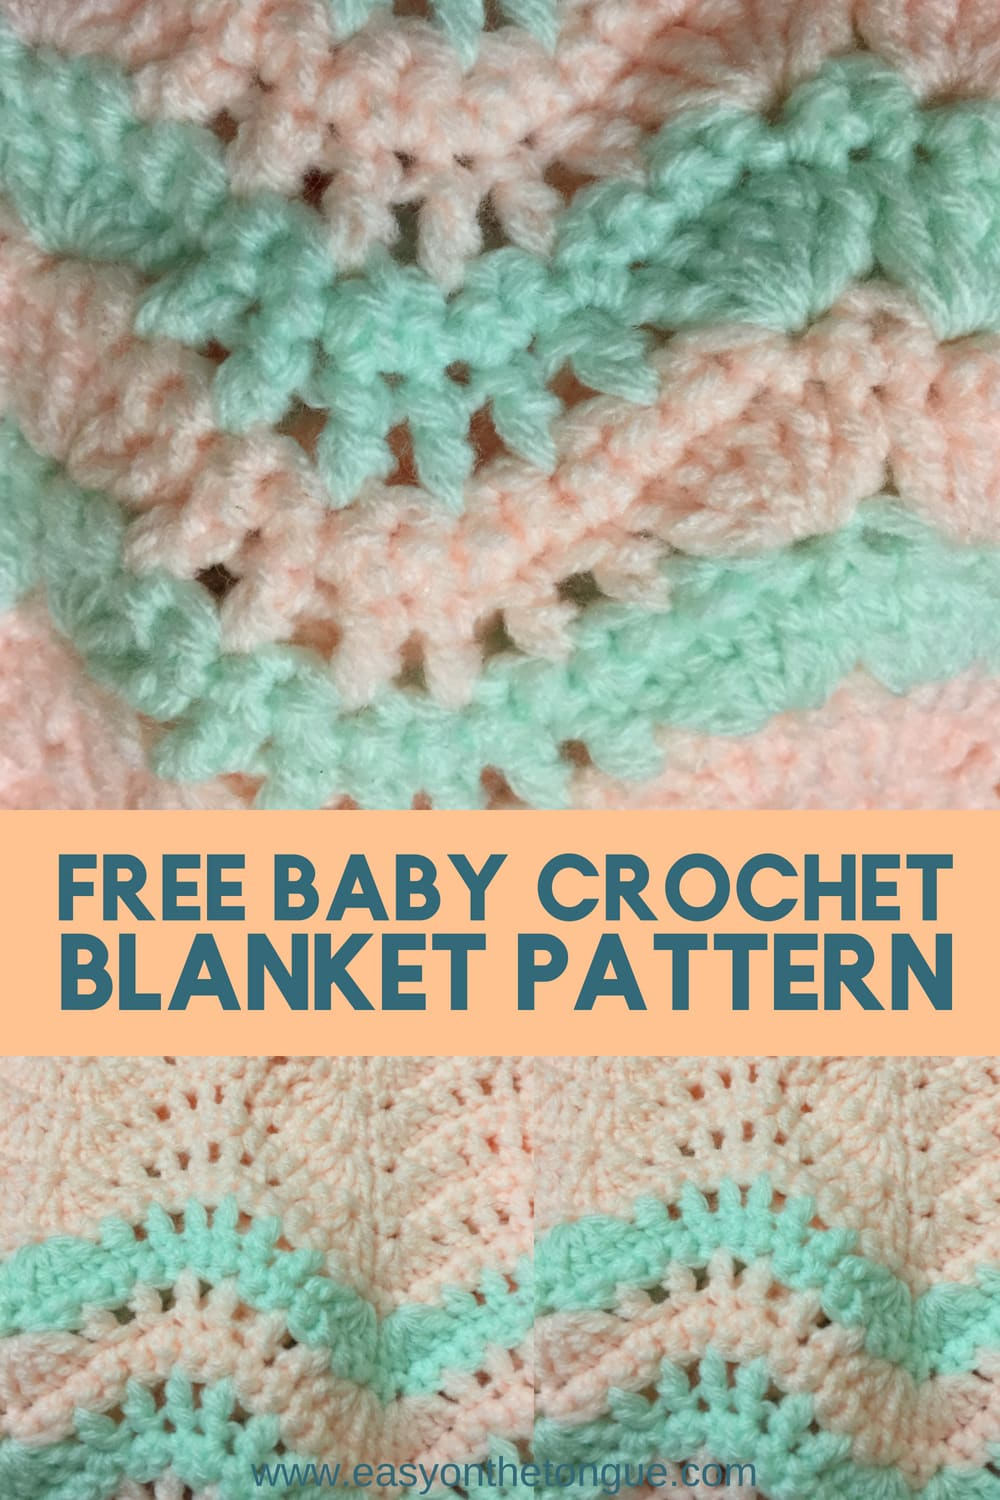 More Free Baby Crochet Blanket Patterns To Do In A Weekend